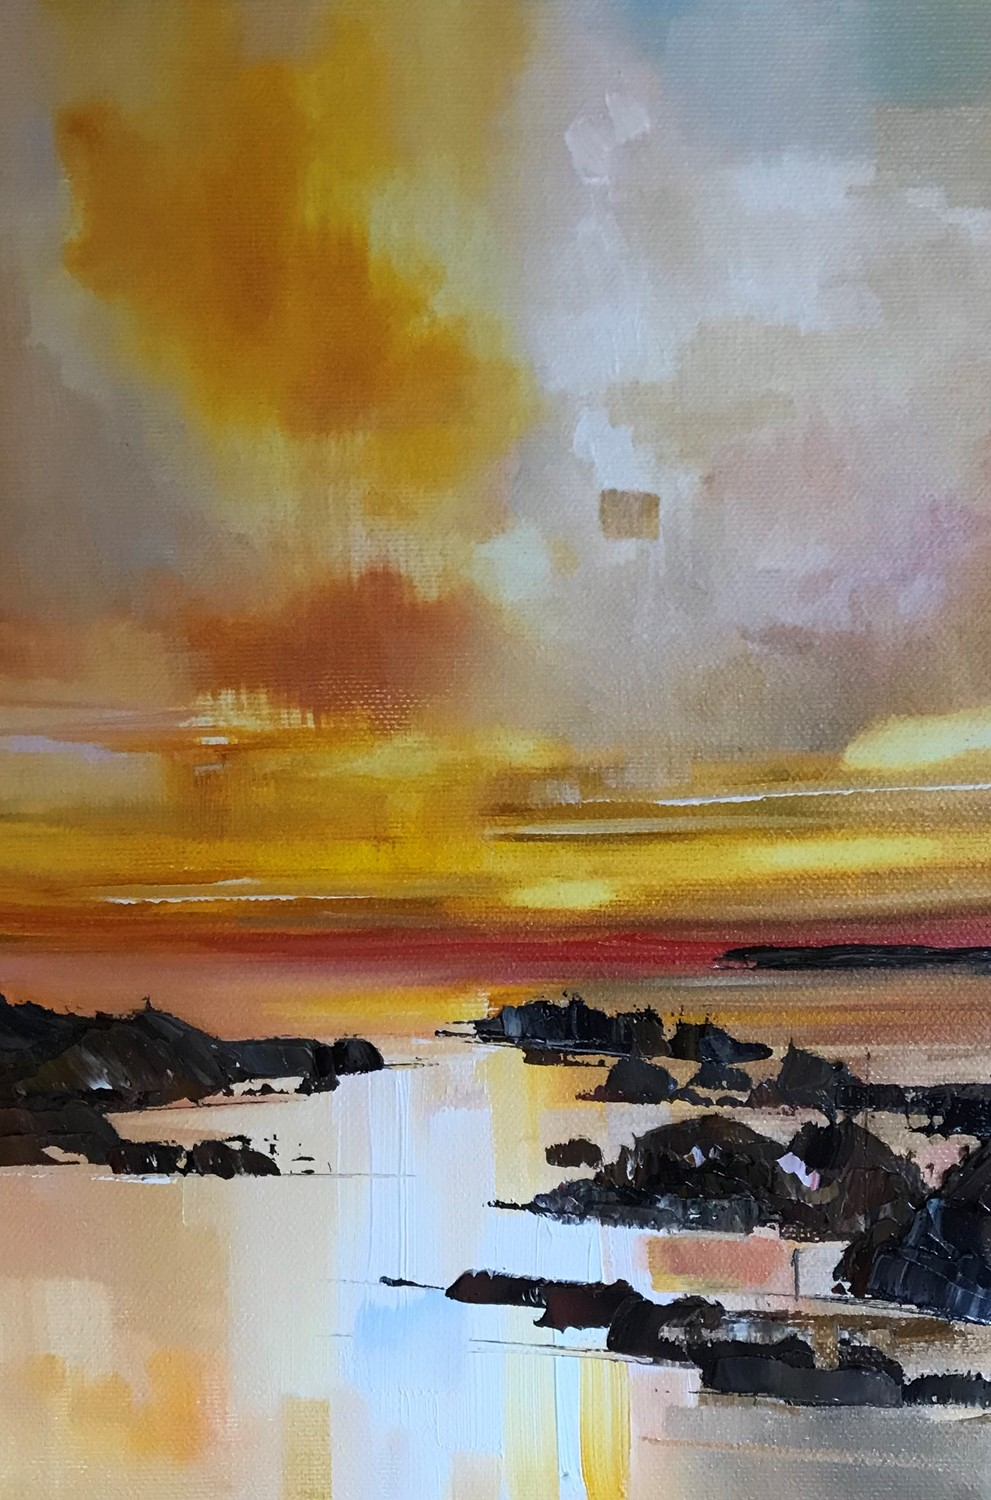 'Amospheric Light in the Sky' by artist Rosanne Barr